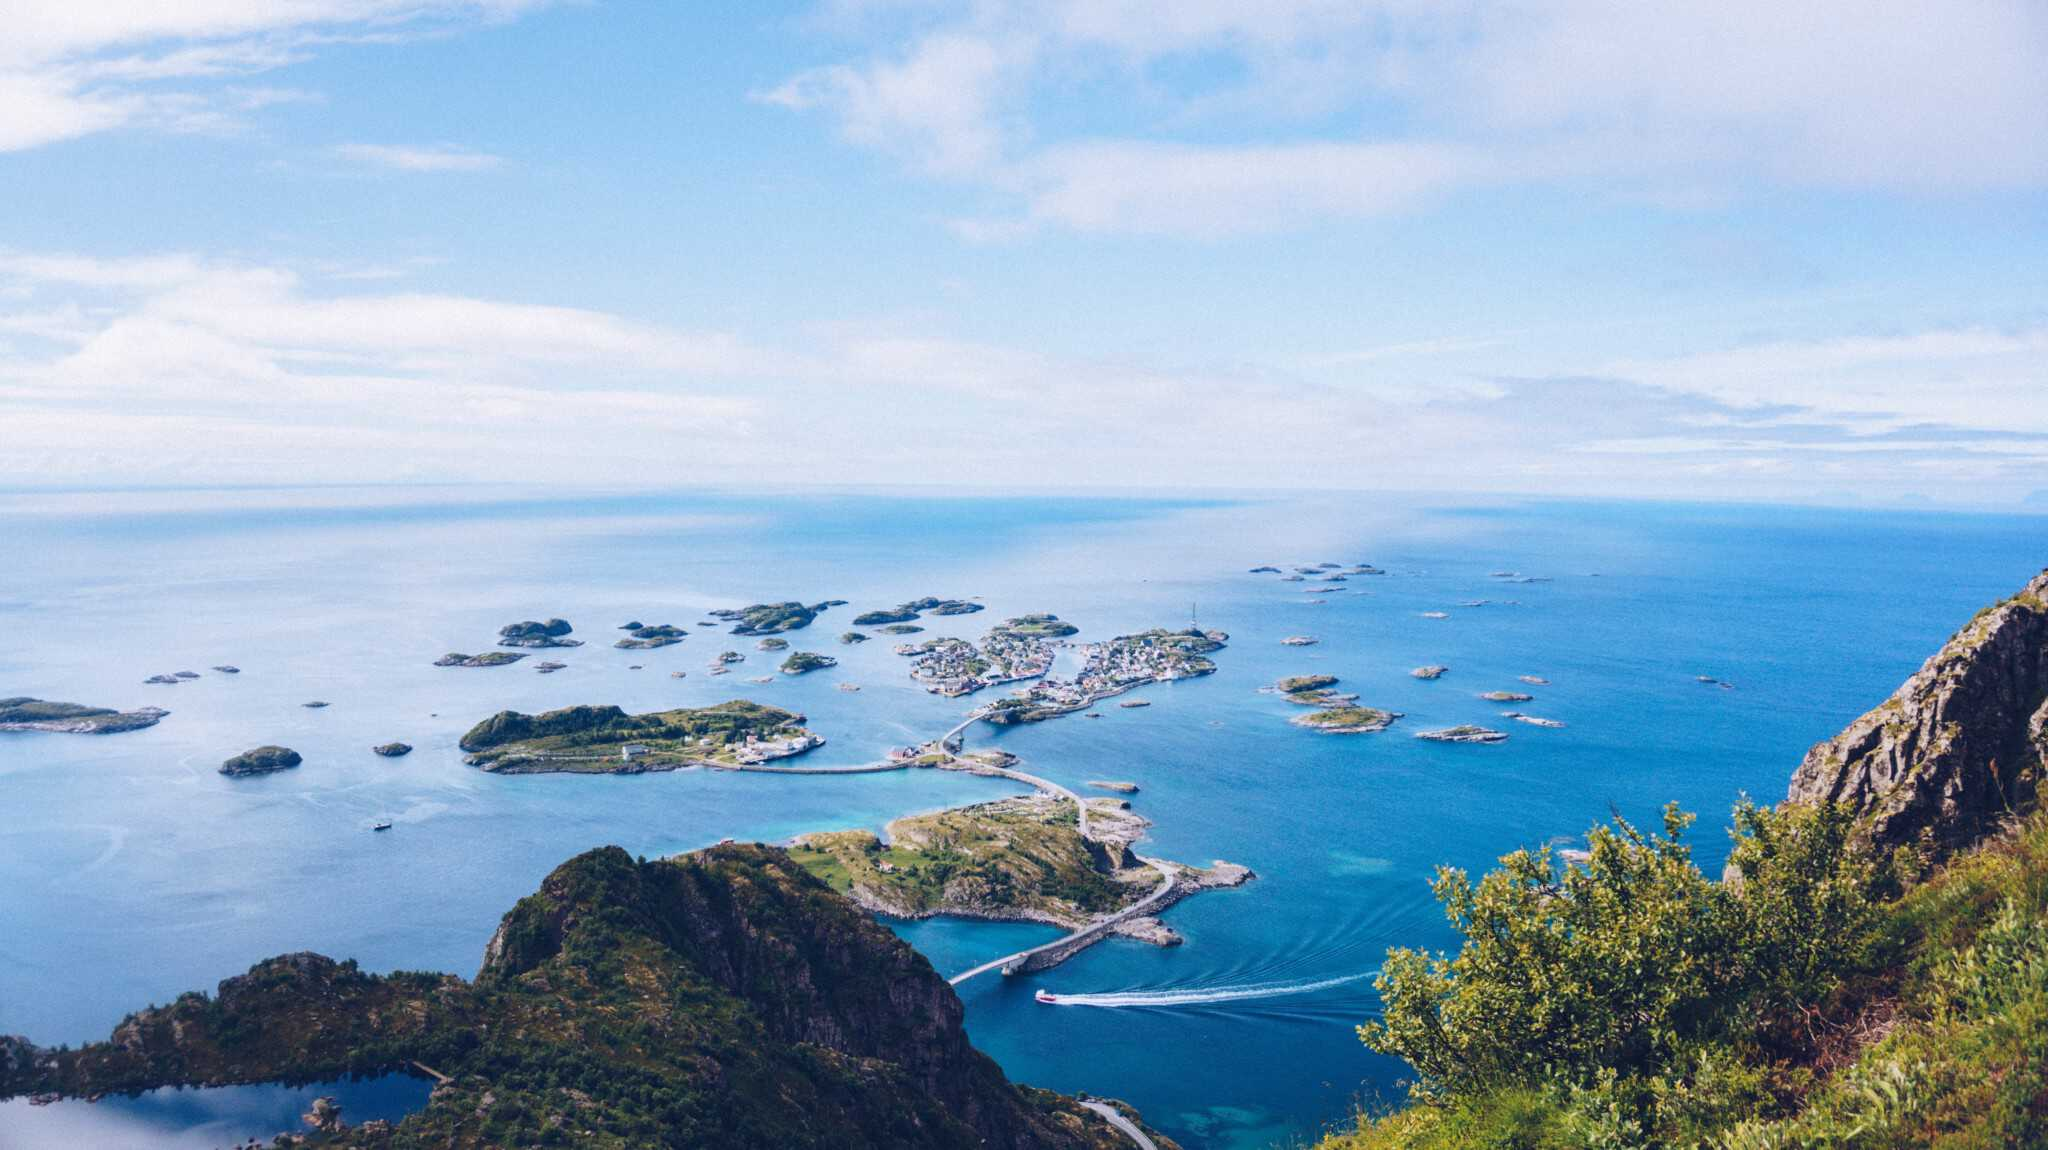 There are four lookout and rest points on the route, the combination of architecture and nature make these points definitely worthwhile. Many of these locations are also popular among local fishermen.